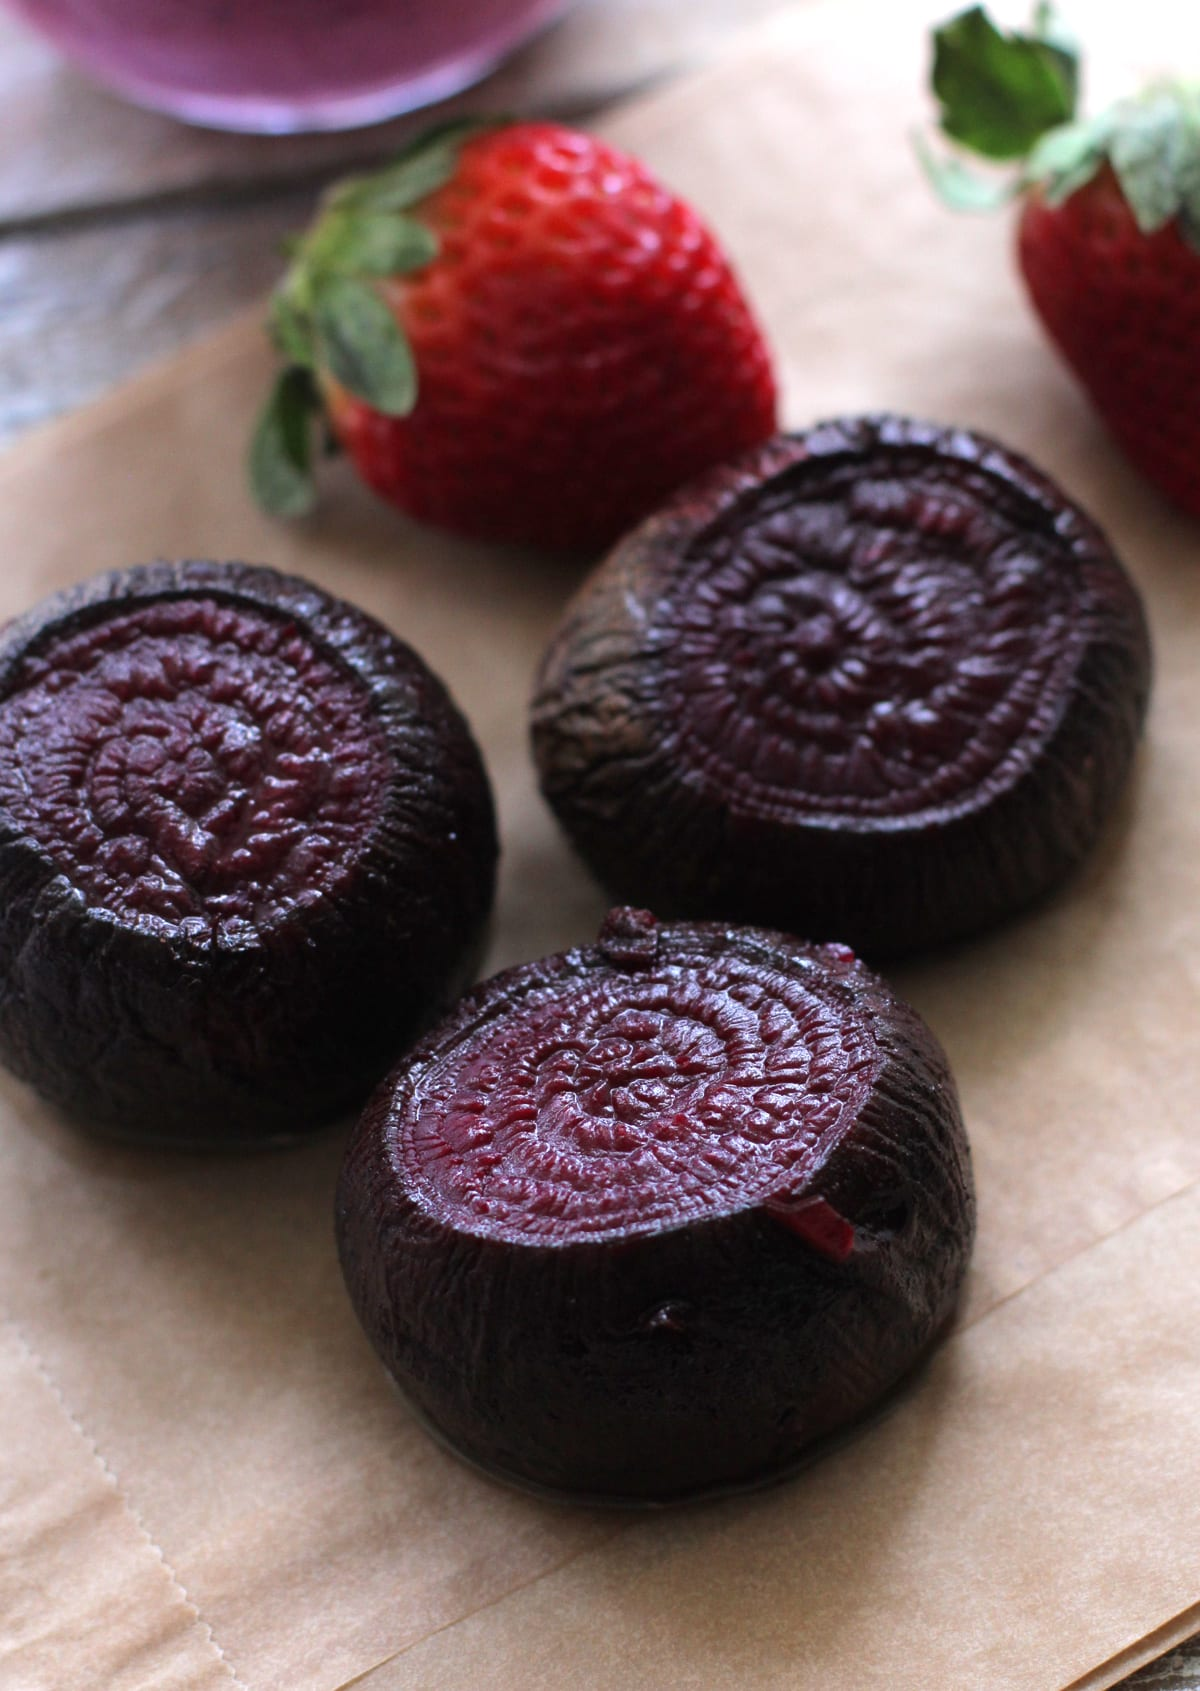 how to cook beets quickly